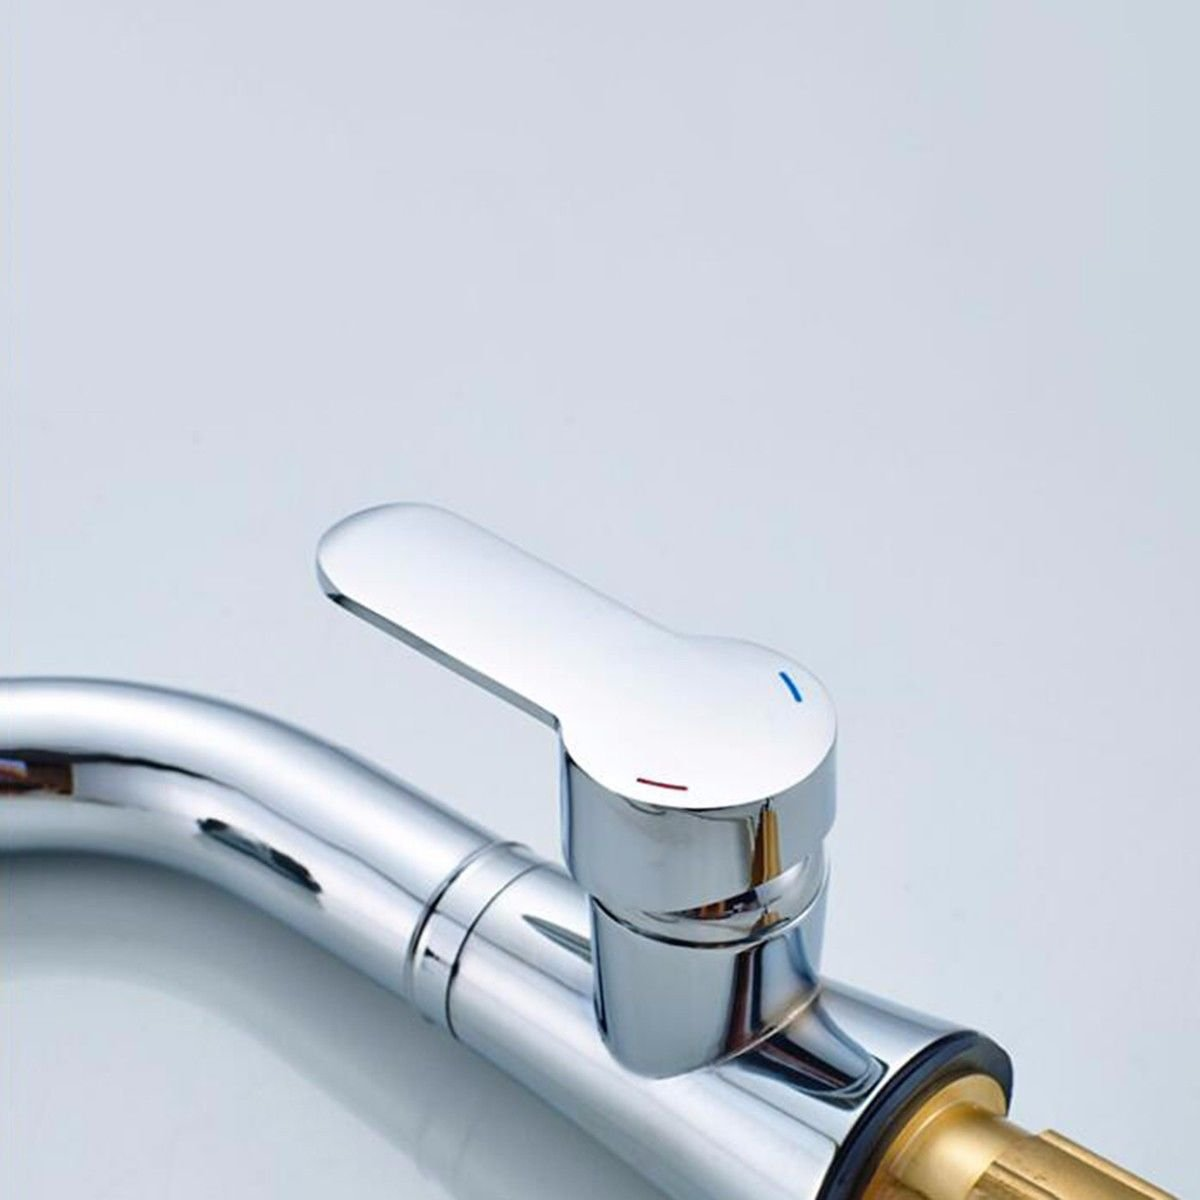 B Hlluya Professional Sink Mixer Tap Kitchen Faucet The copper basin faucet to draw-down-water washing your face basin, B